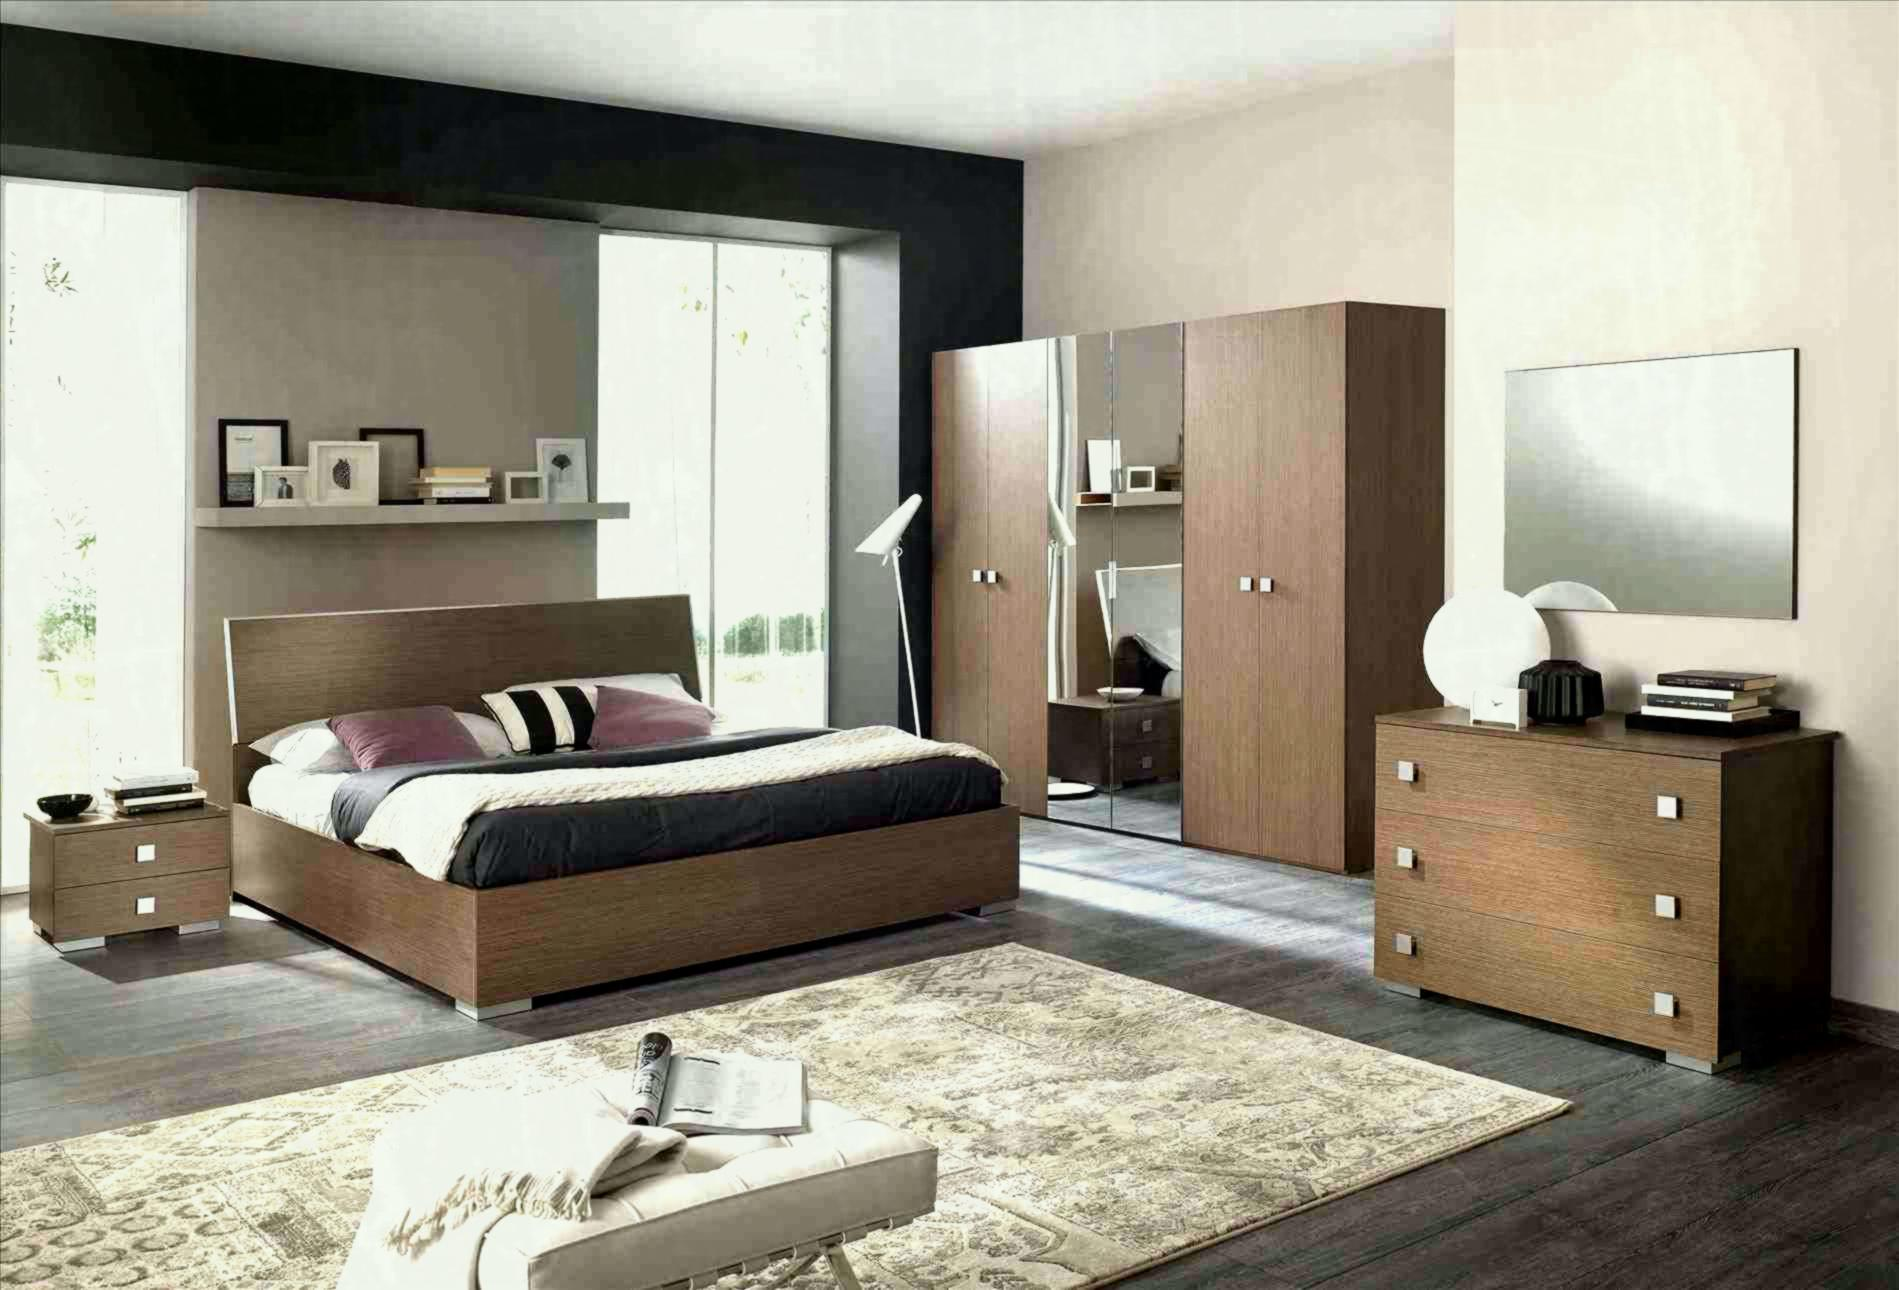 room design master bedroom 10 David Collins Master Bedroom Ideas bedroom furniture designs x room bed design king sets indian box awesome setup ideas gallery site